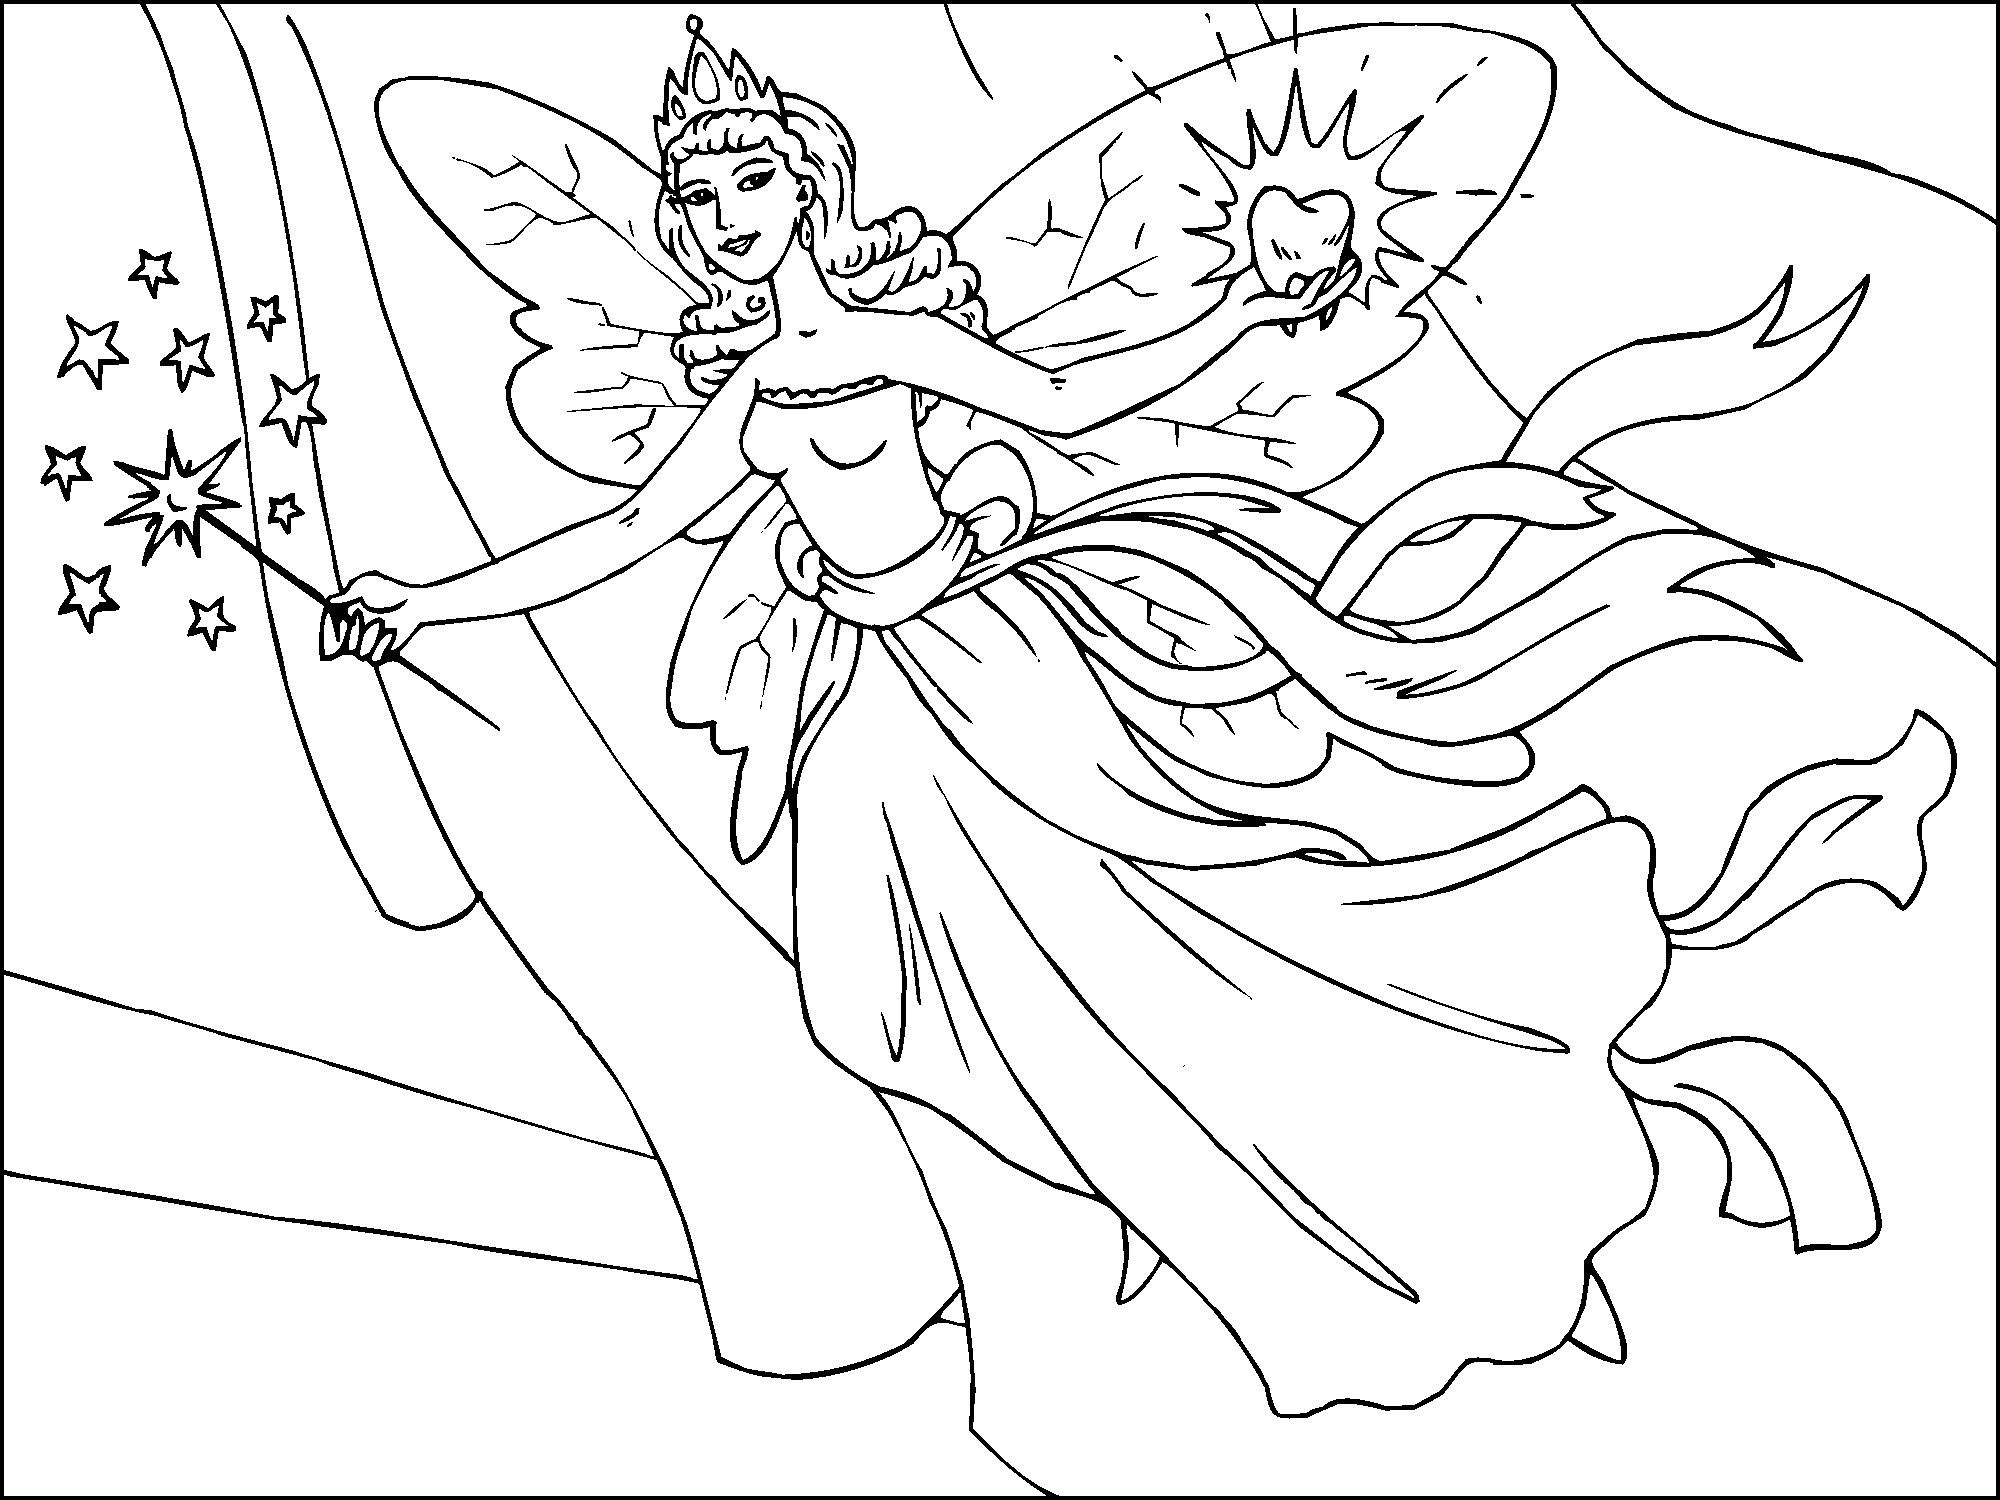 Free Printable Fairy Coloring Pages For Kids | Fairy, Free printable ...